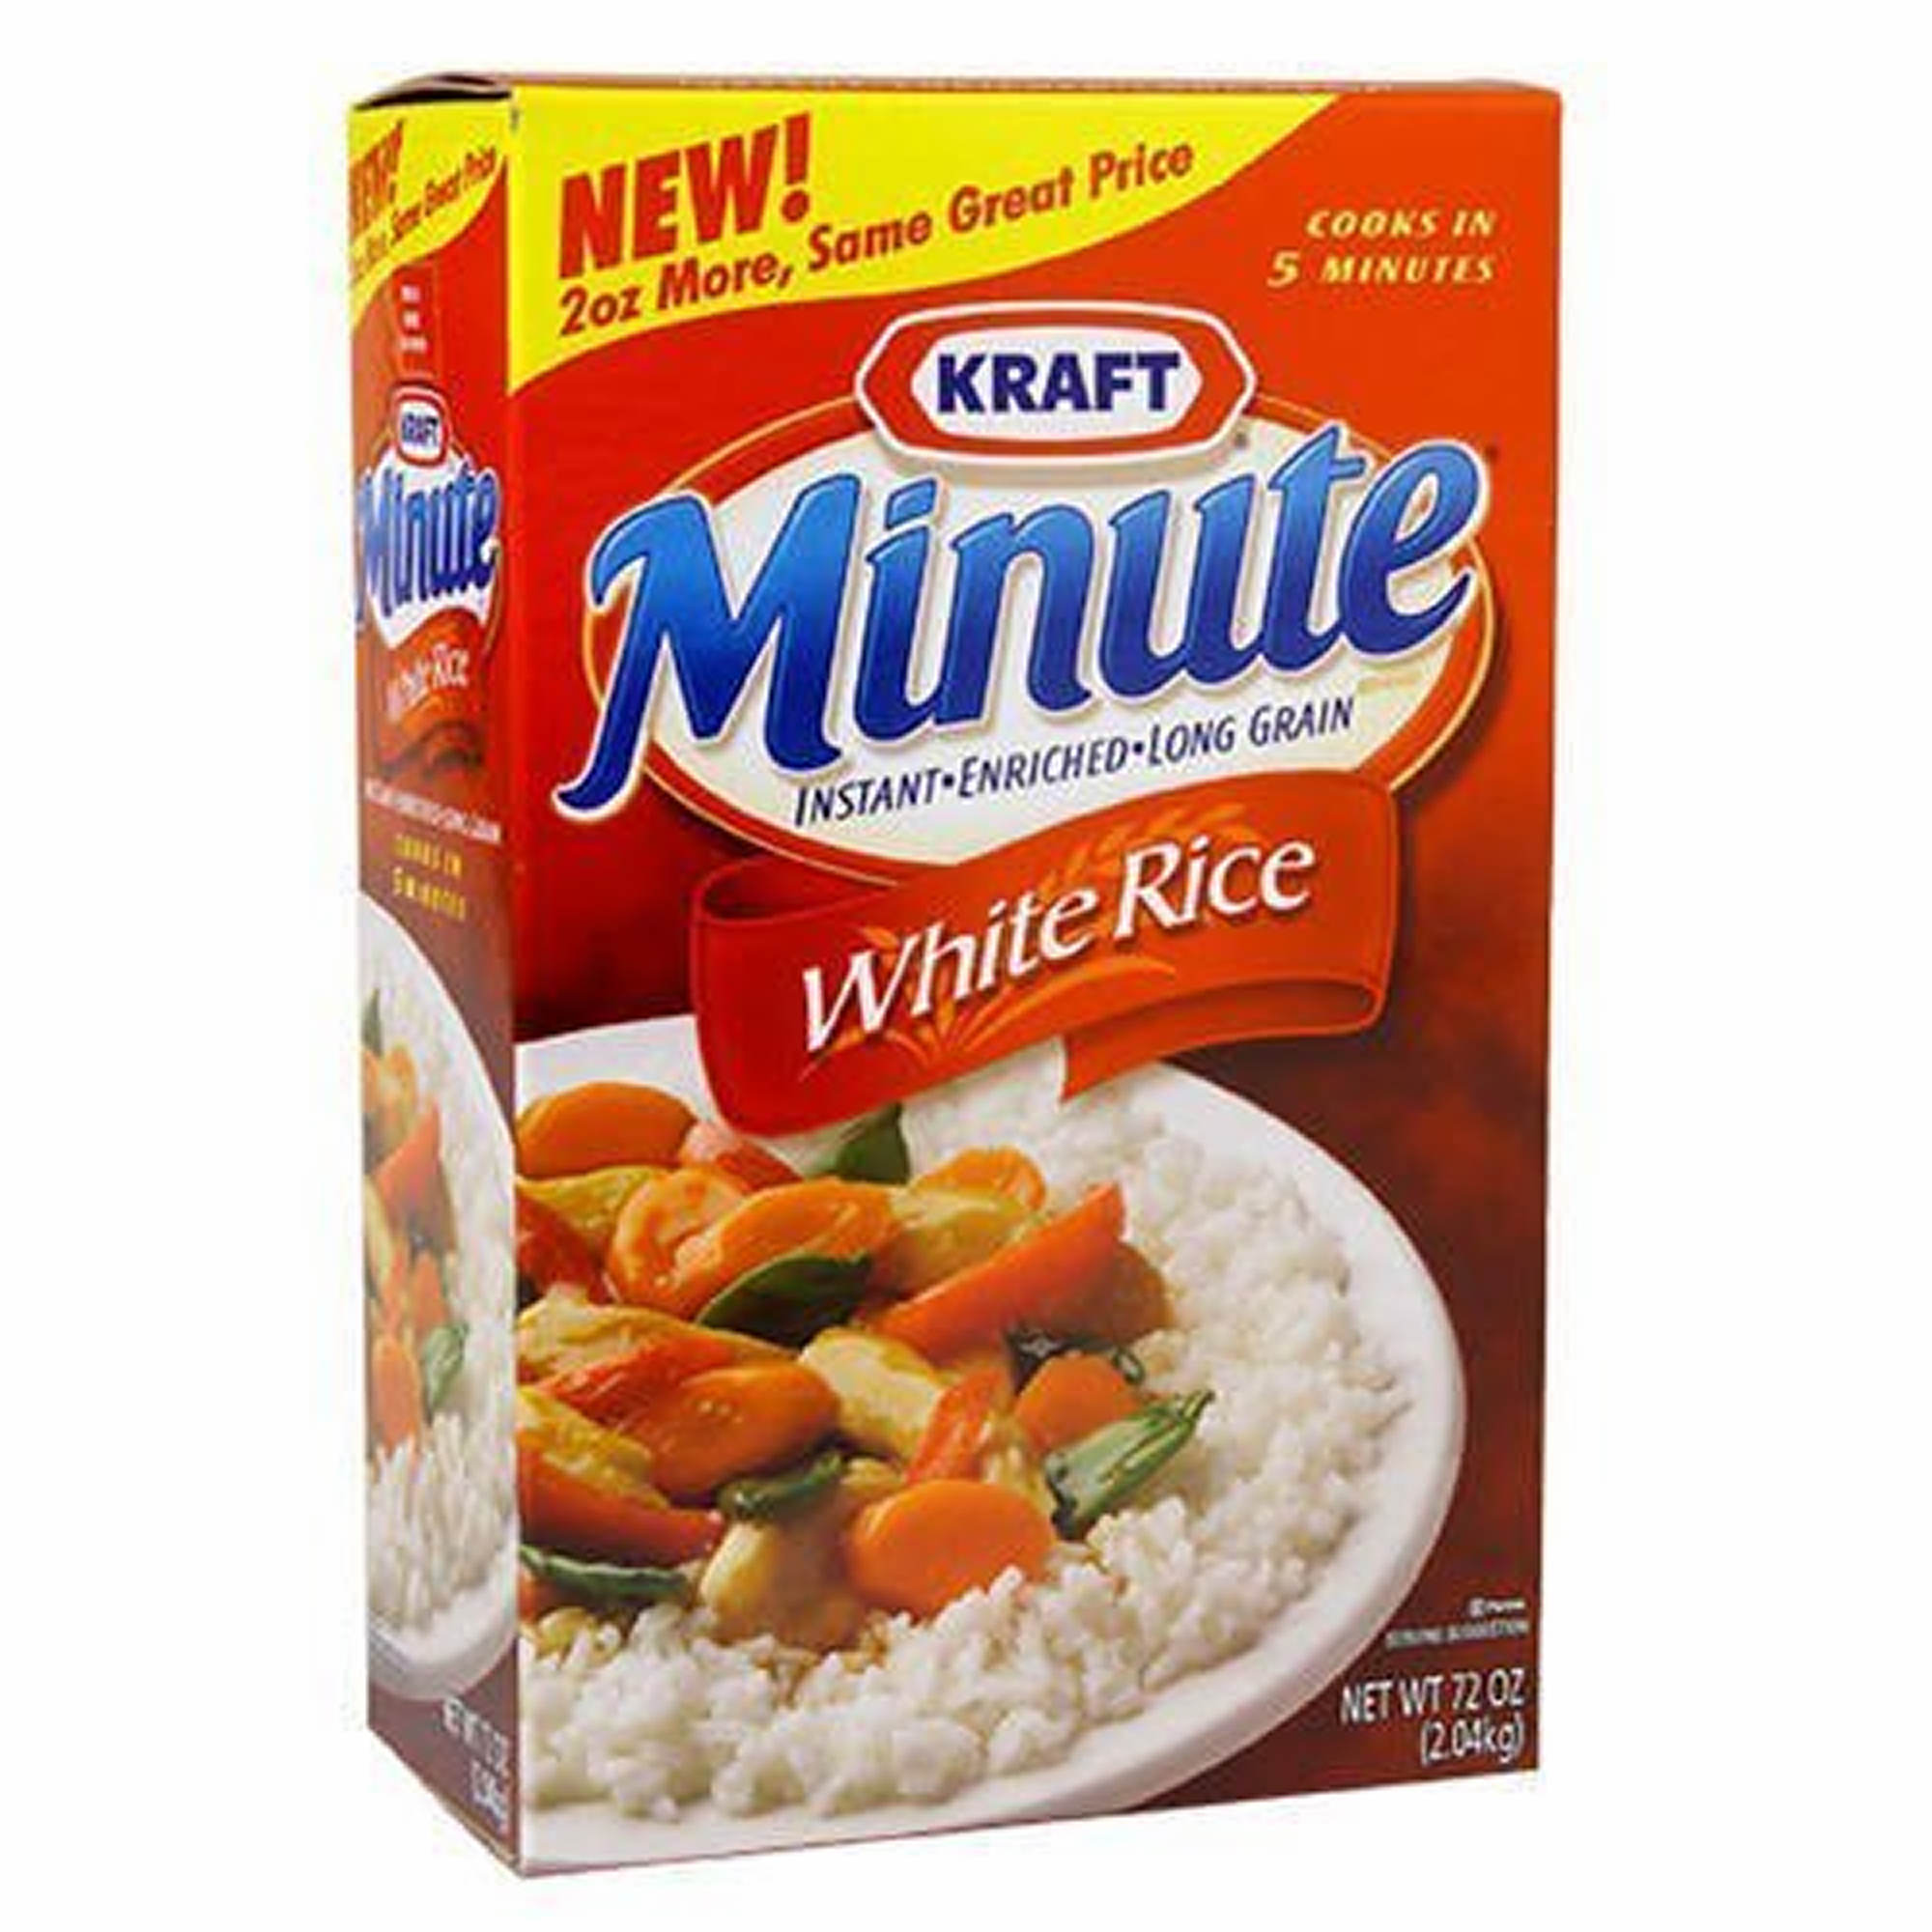 Minute Rice Instant Enriched Long Grain White Rice, 72 oz